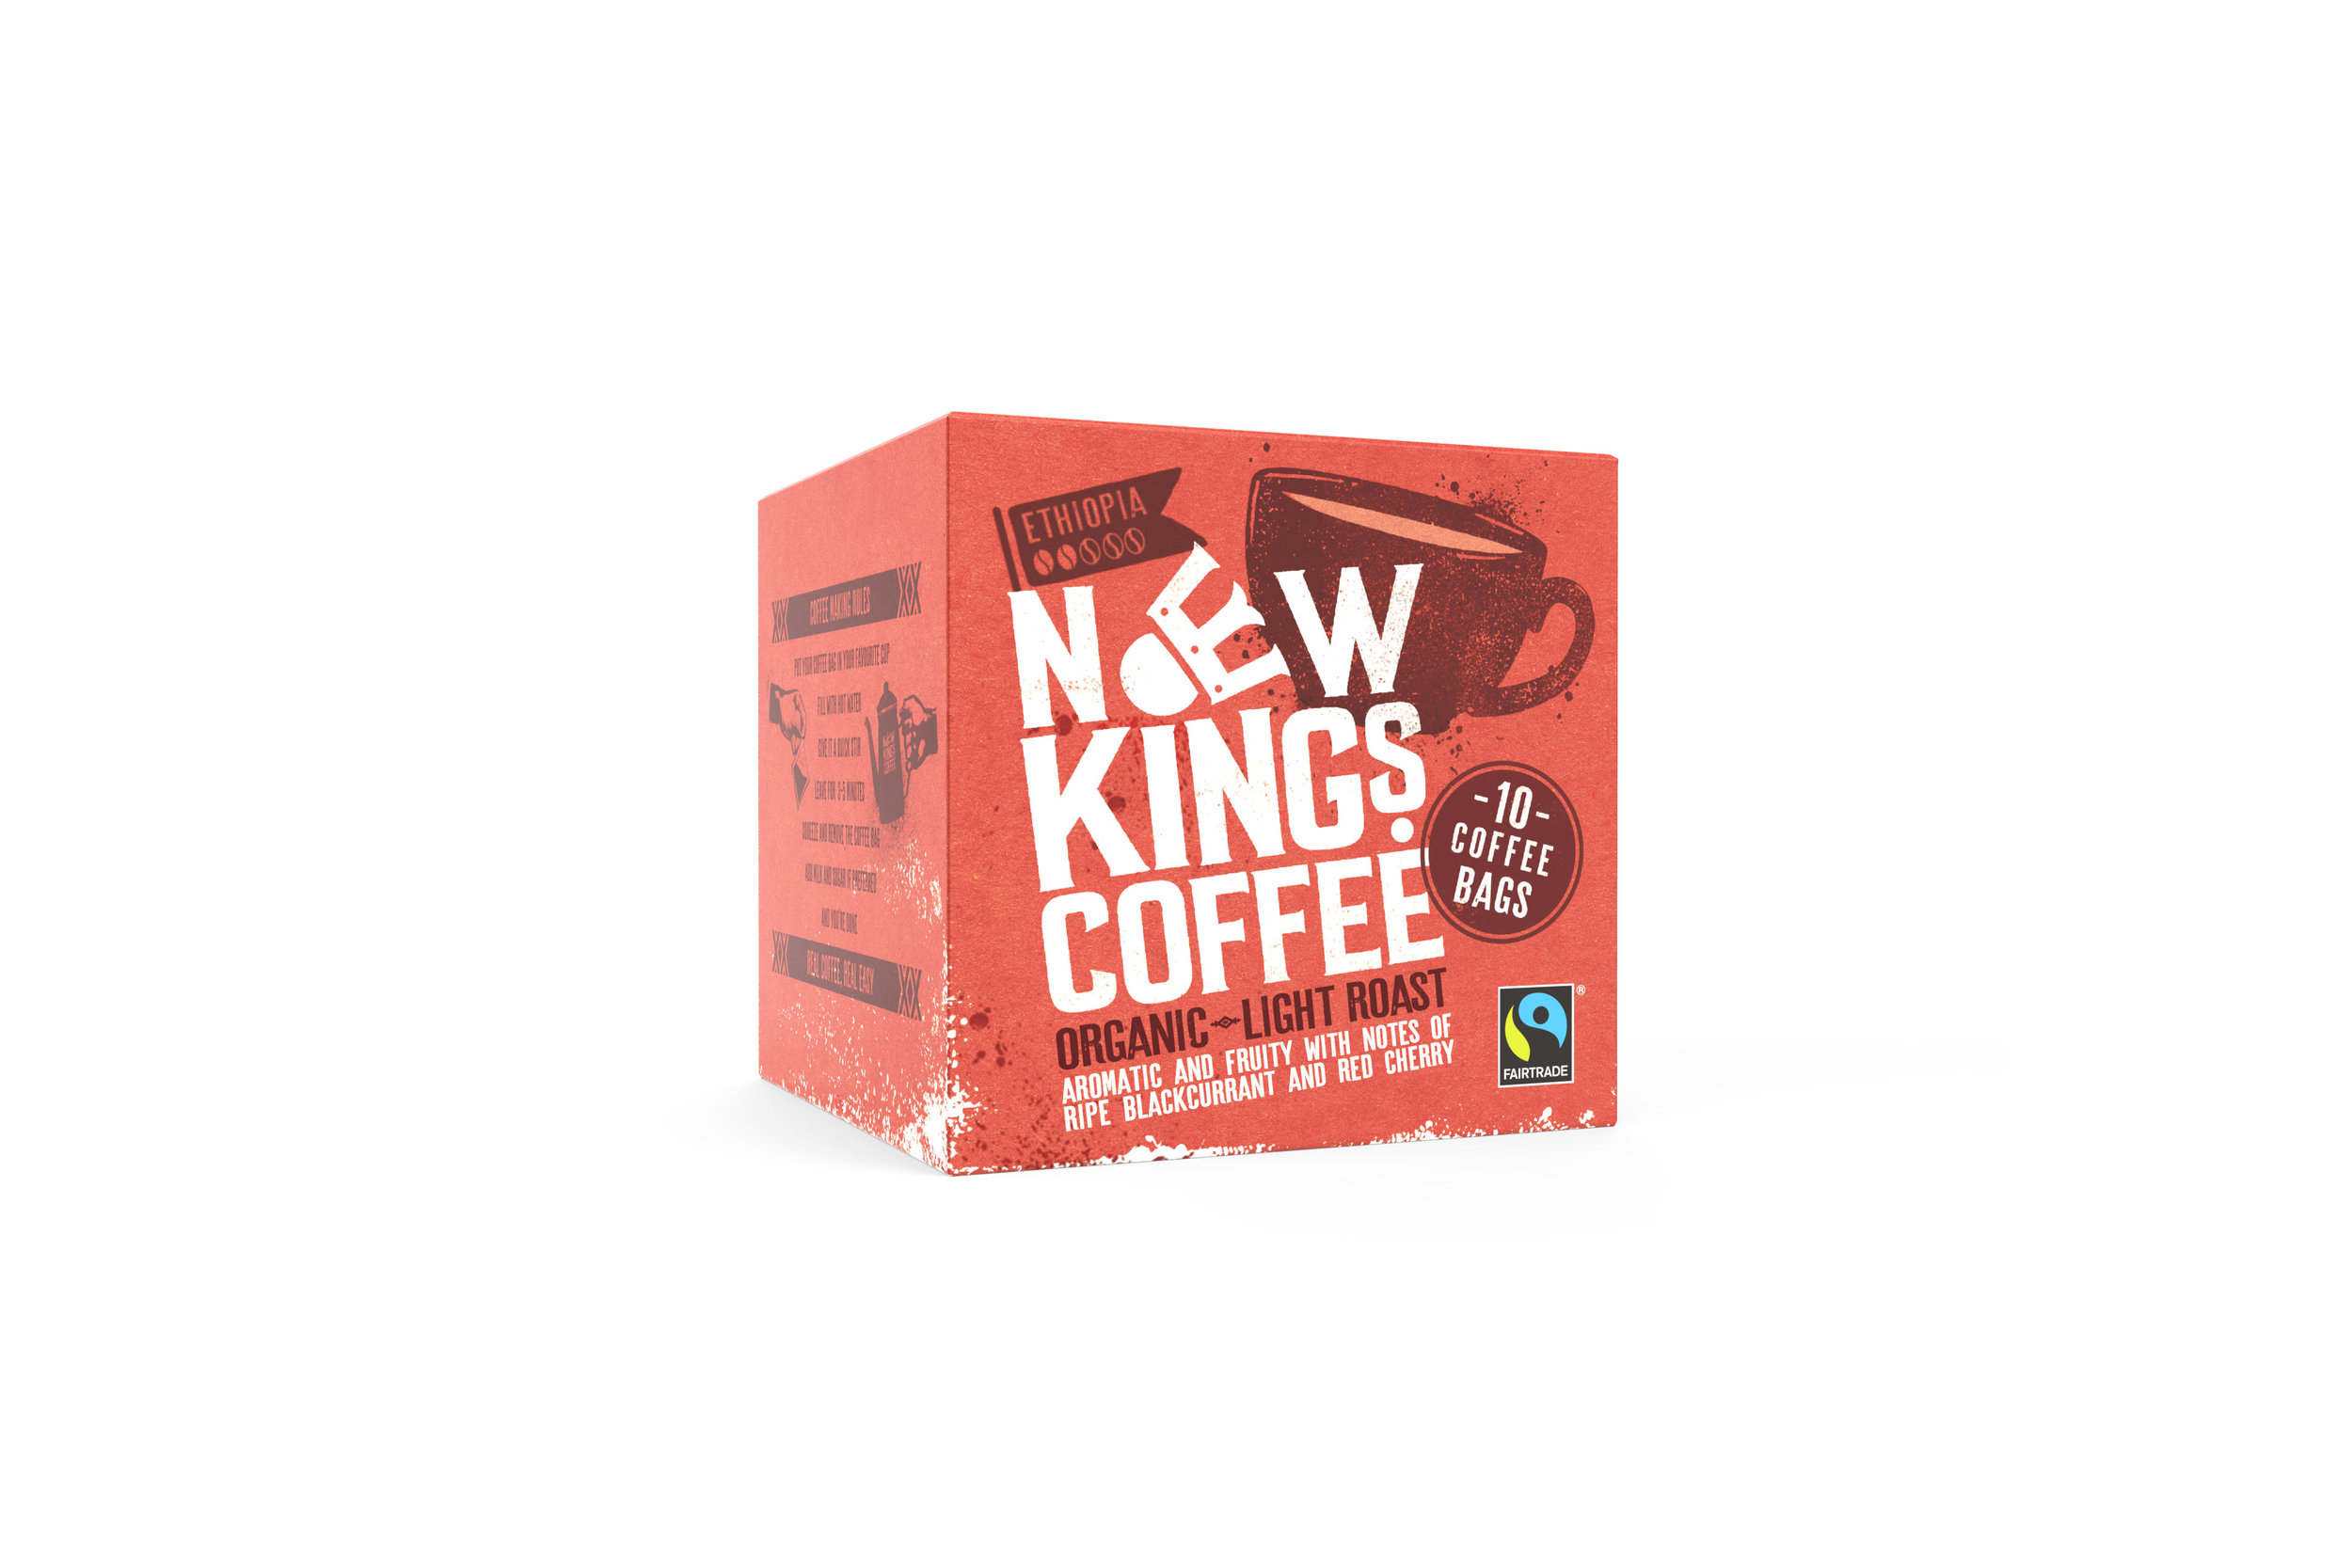 New-Kings-Coffee-Bags-Fairtrade-Organic-Ethiopia-Light-Roast-Front.jpg